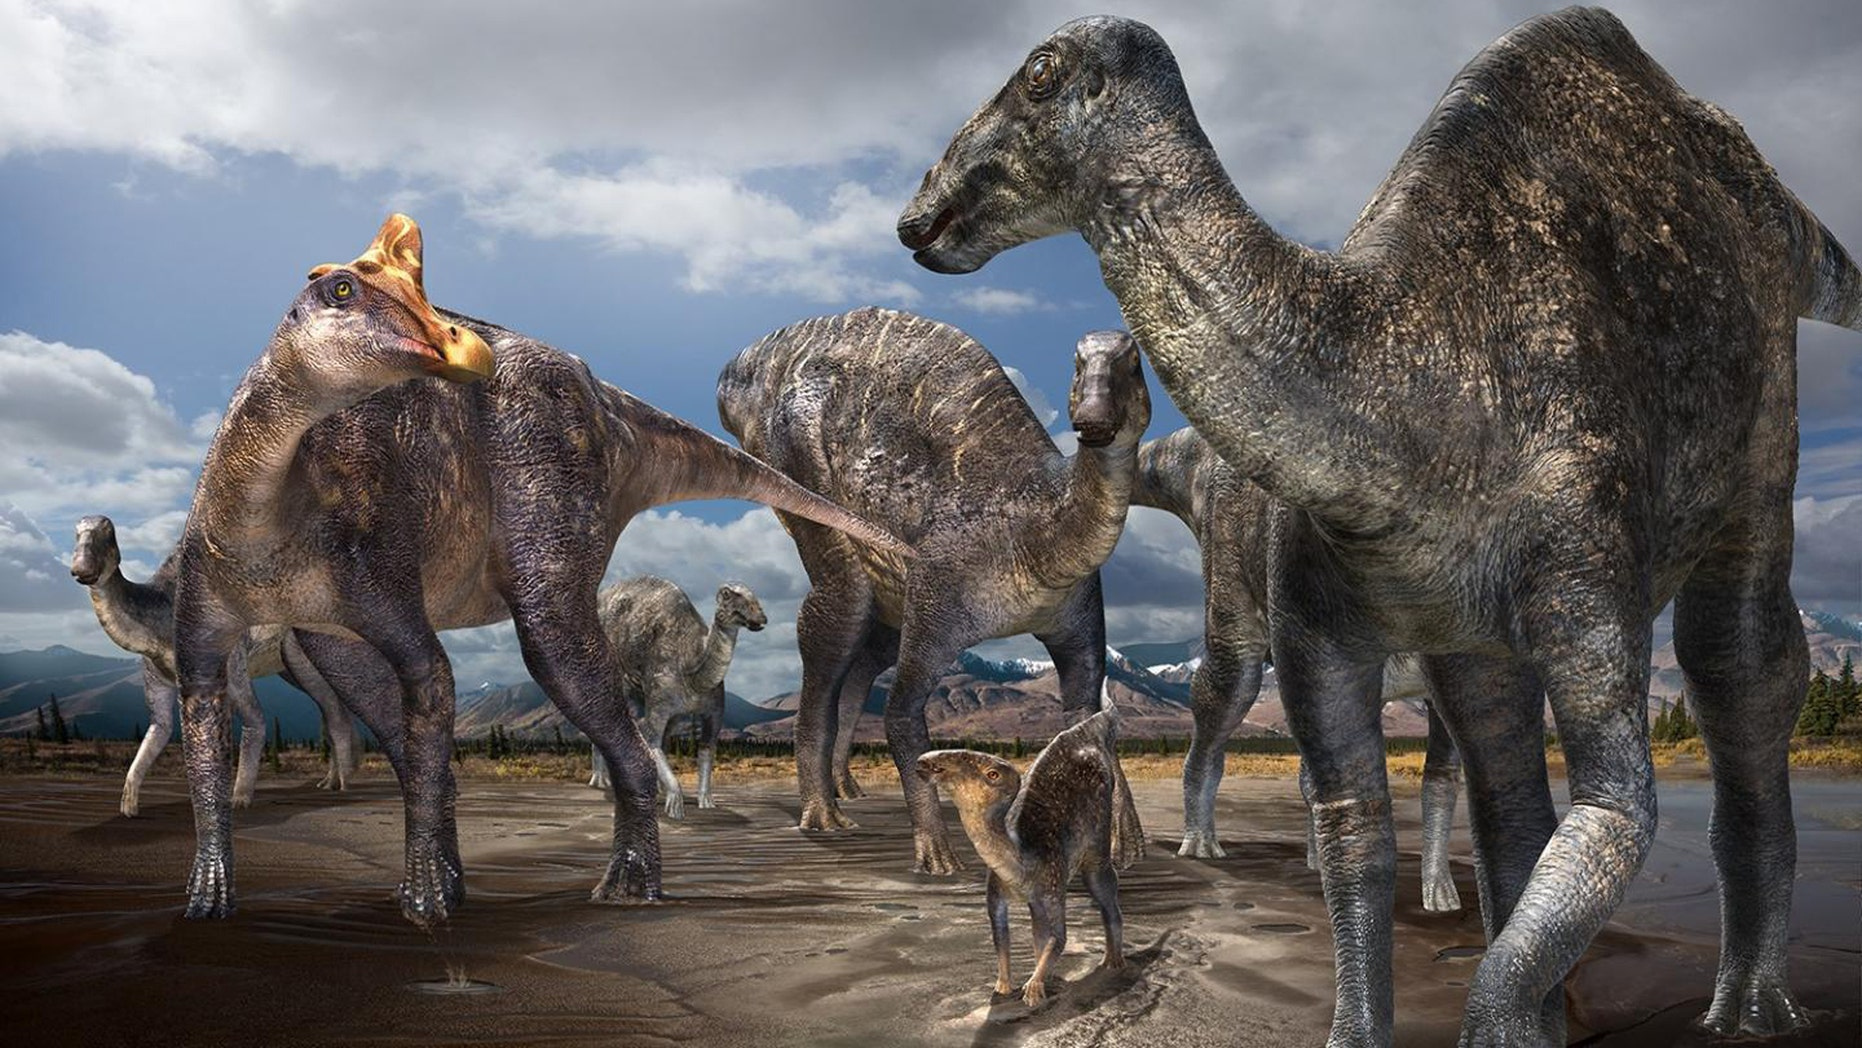 File photo: Paleontologists from Hokkaido University in Japan, in cooperation with paleontologists from the Perot Museum of Nature and Science in Dallas, Texas, have discovered the first confirmed occurrence of a lambeosaurine (crested 'duck-billed' dinosaur) from the Arctic. (Credit: Masato Hattori)